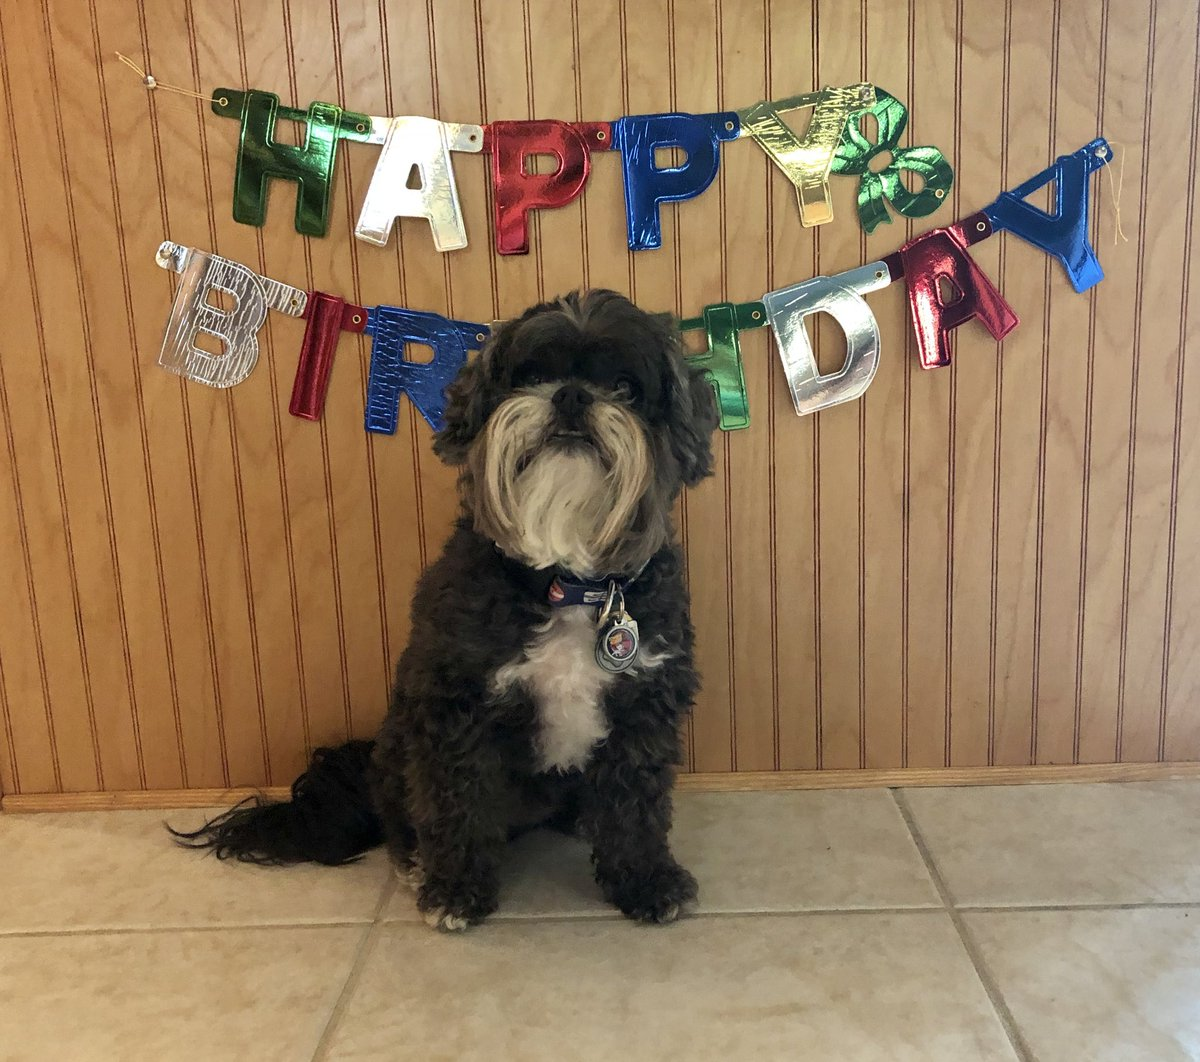 Happy Birthday to me! I'm 9 years-old today.  I'm hoping for a bacon cake!  #HappyBirthday #HappyNinthBirthdaypic.twitter.com/SQBeuD6JyX